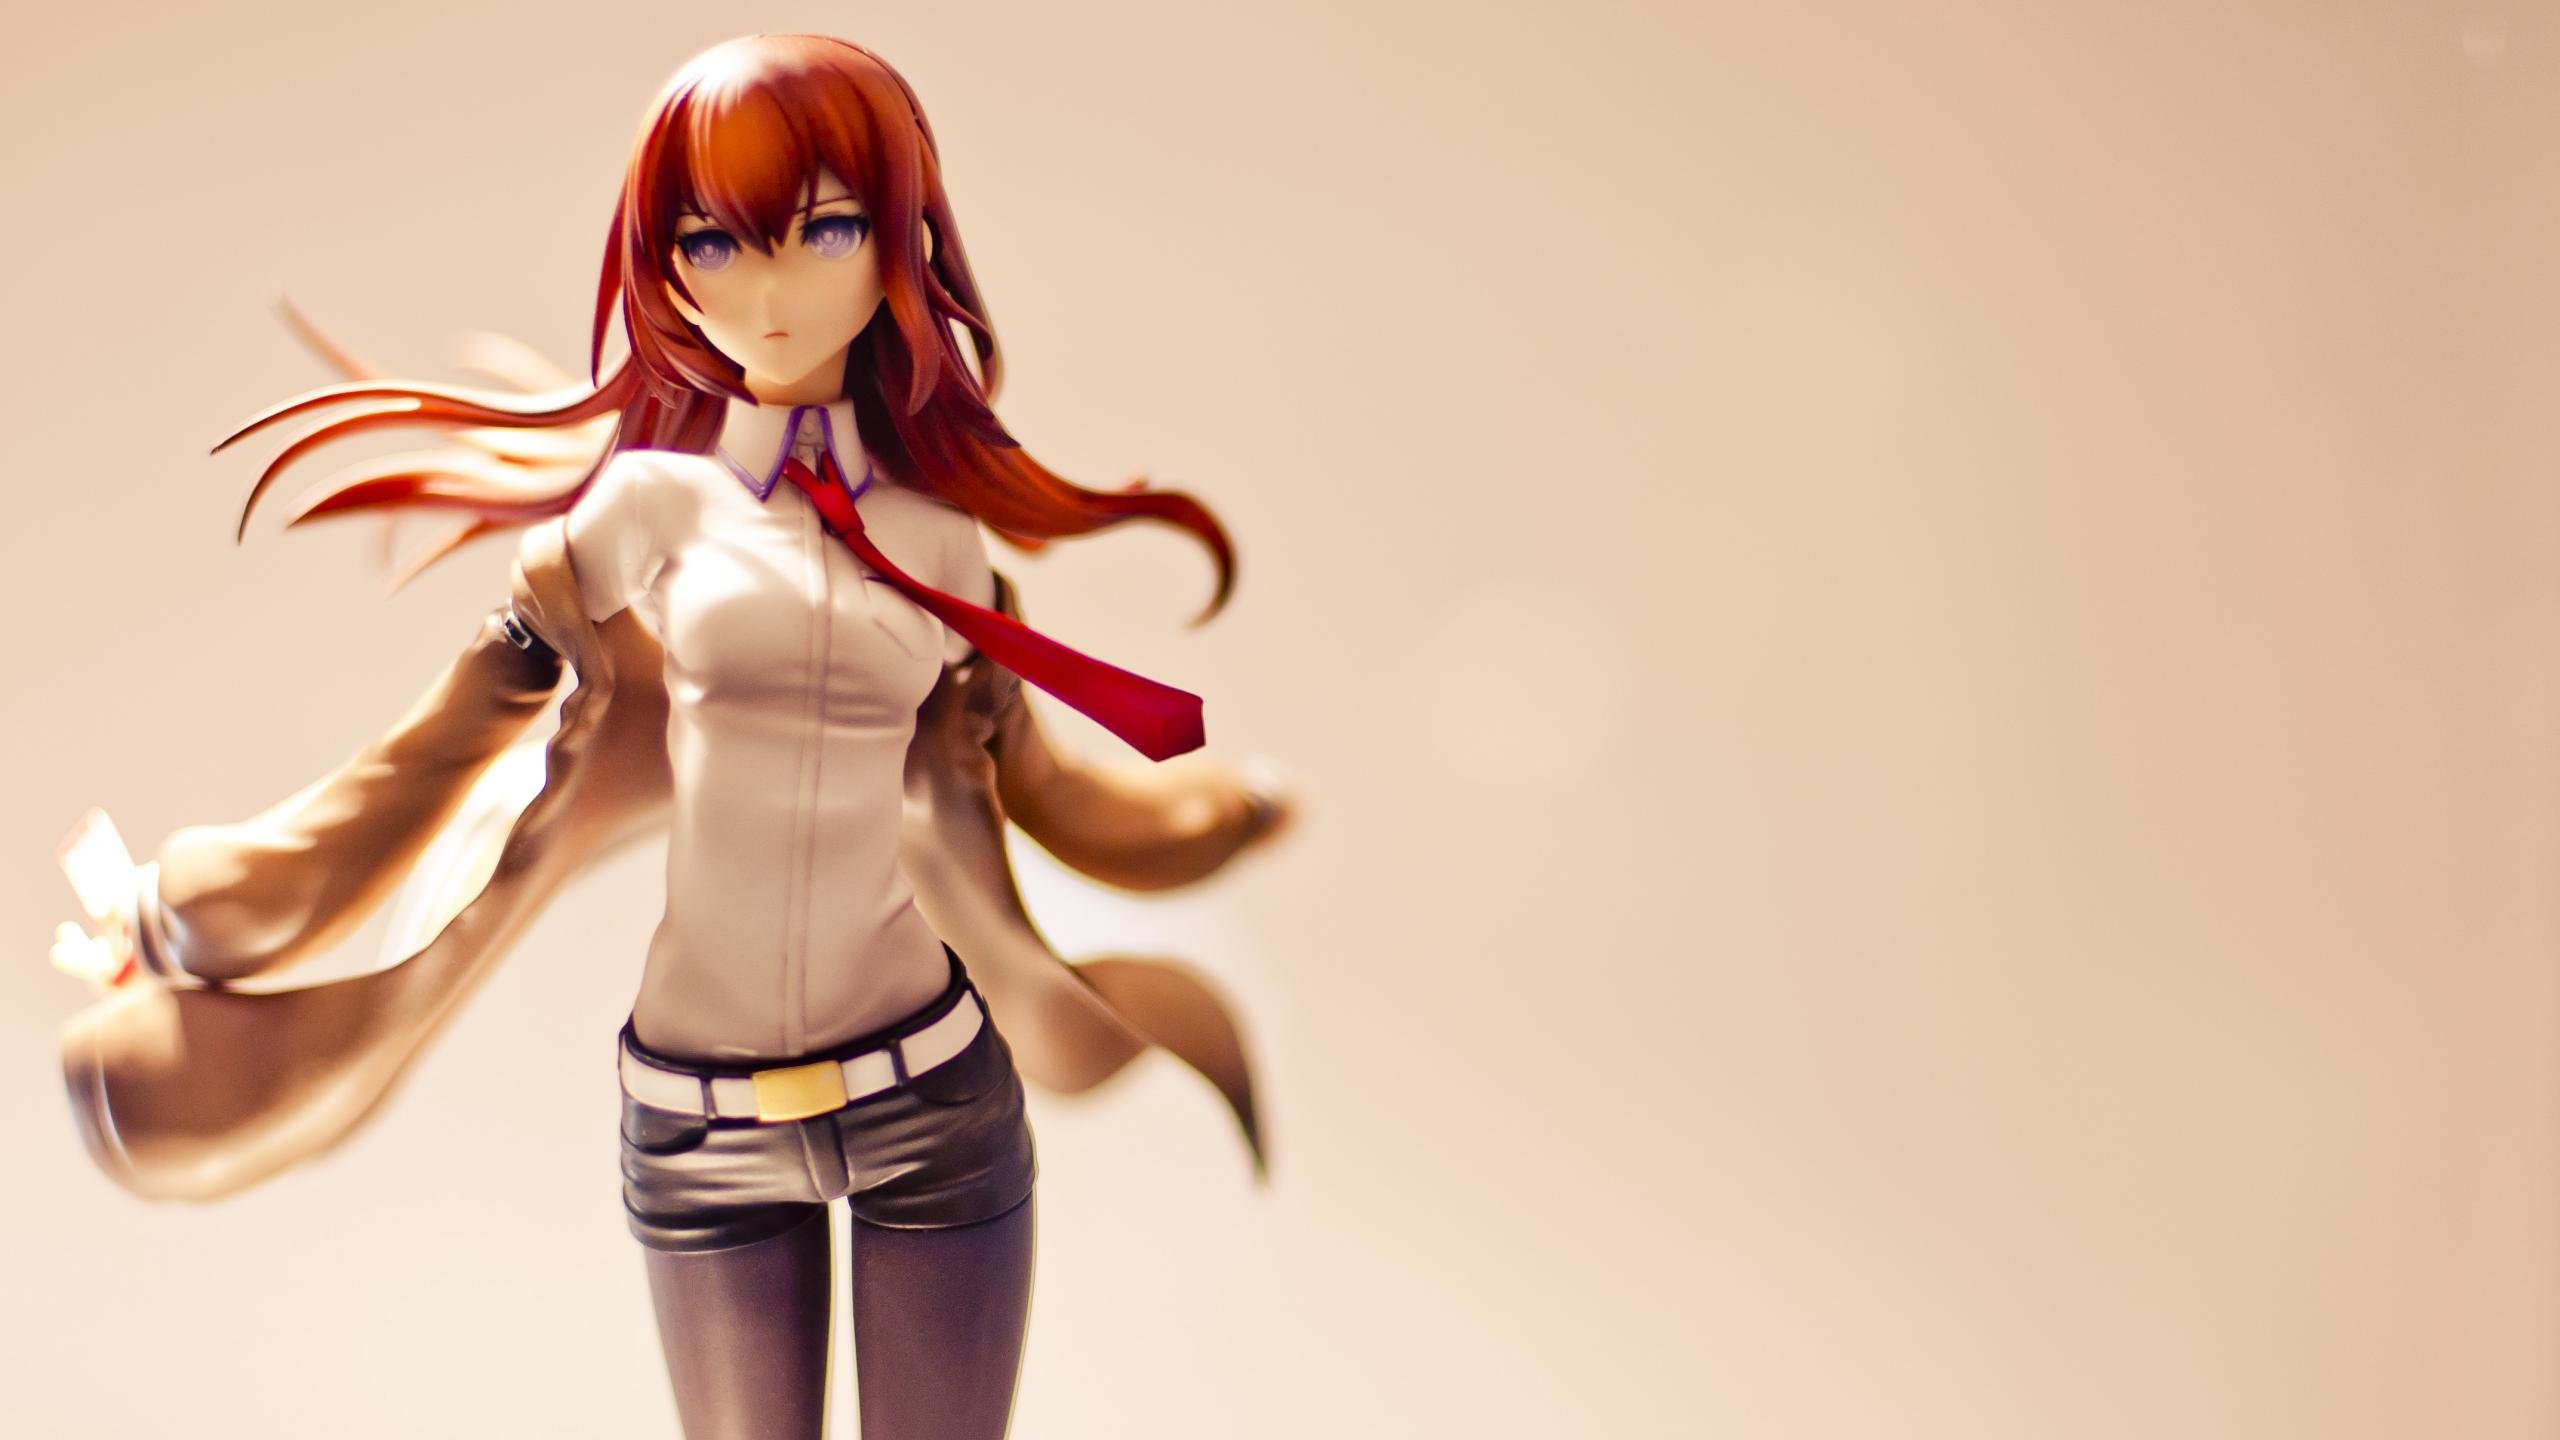 Awesome Kurisu Makise free wallpaper ID:315806 for hd 2560x1440 desktop